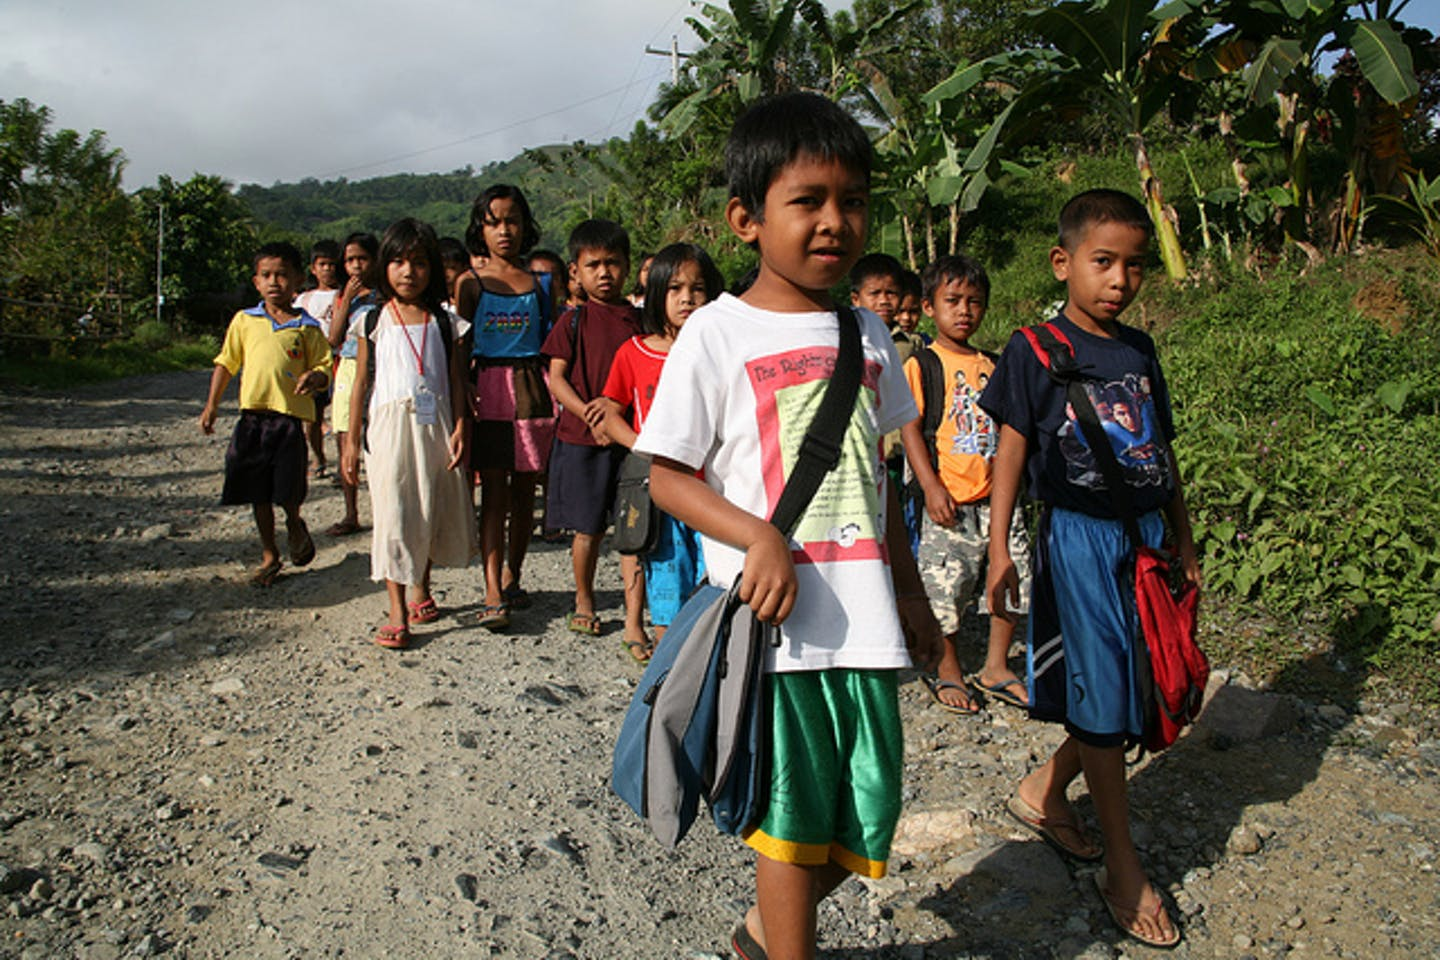 Filipino children walk to school